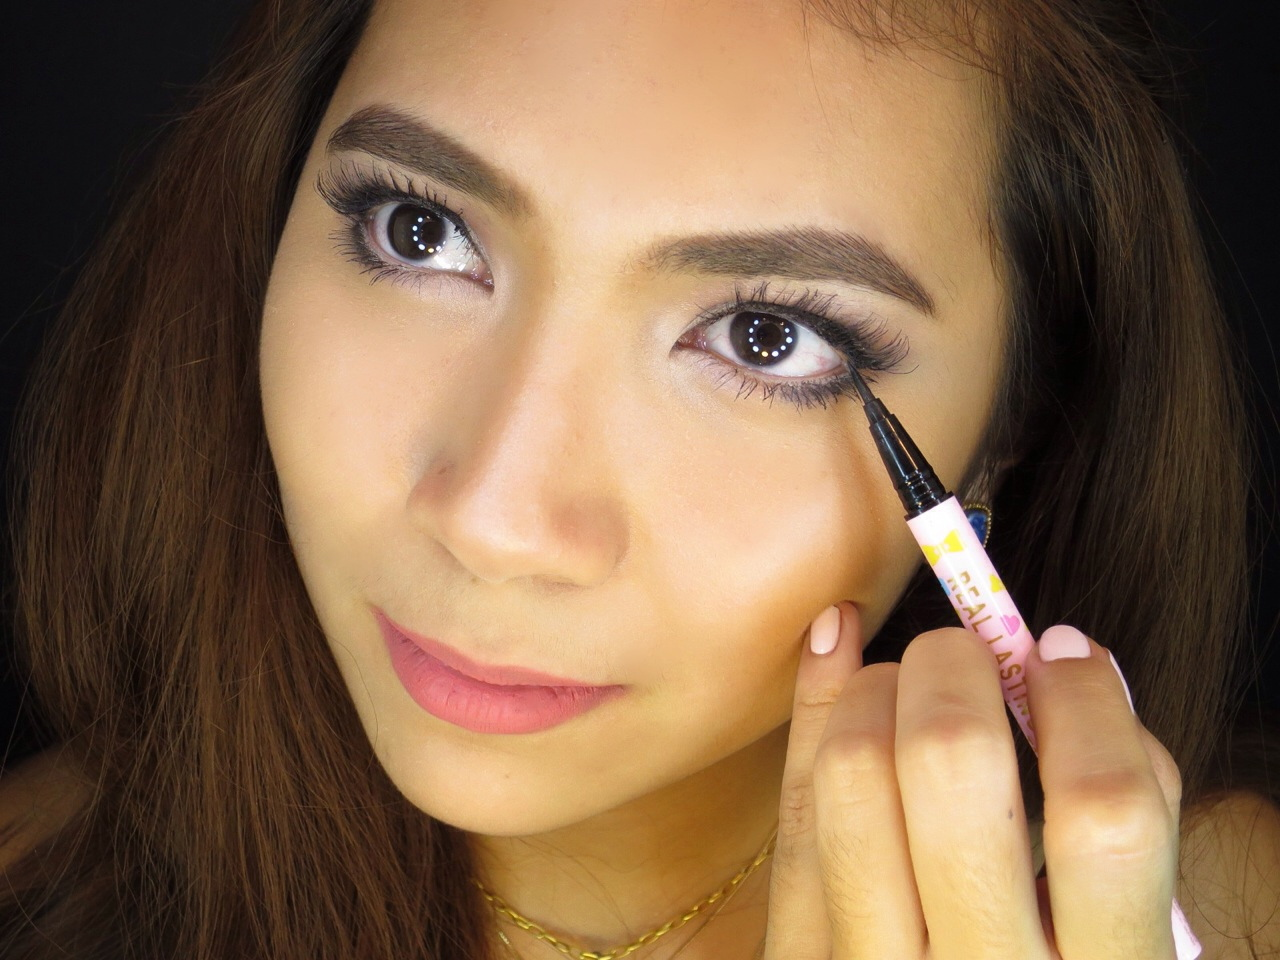 Whenever You Add Makeup To Your Lower Lash Line Whether It's Drawing More  Lashes Or Simply Applying Eyeshadow Or Eyeliner, A Rule Of Thumb Is That  Closing